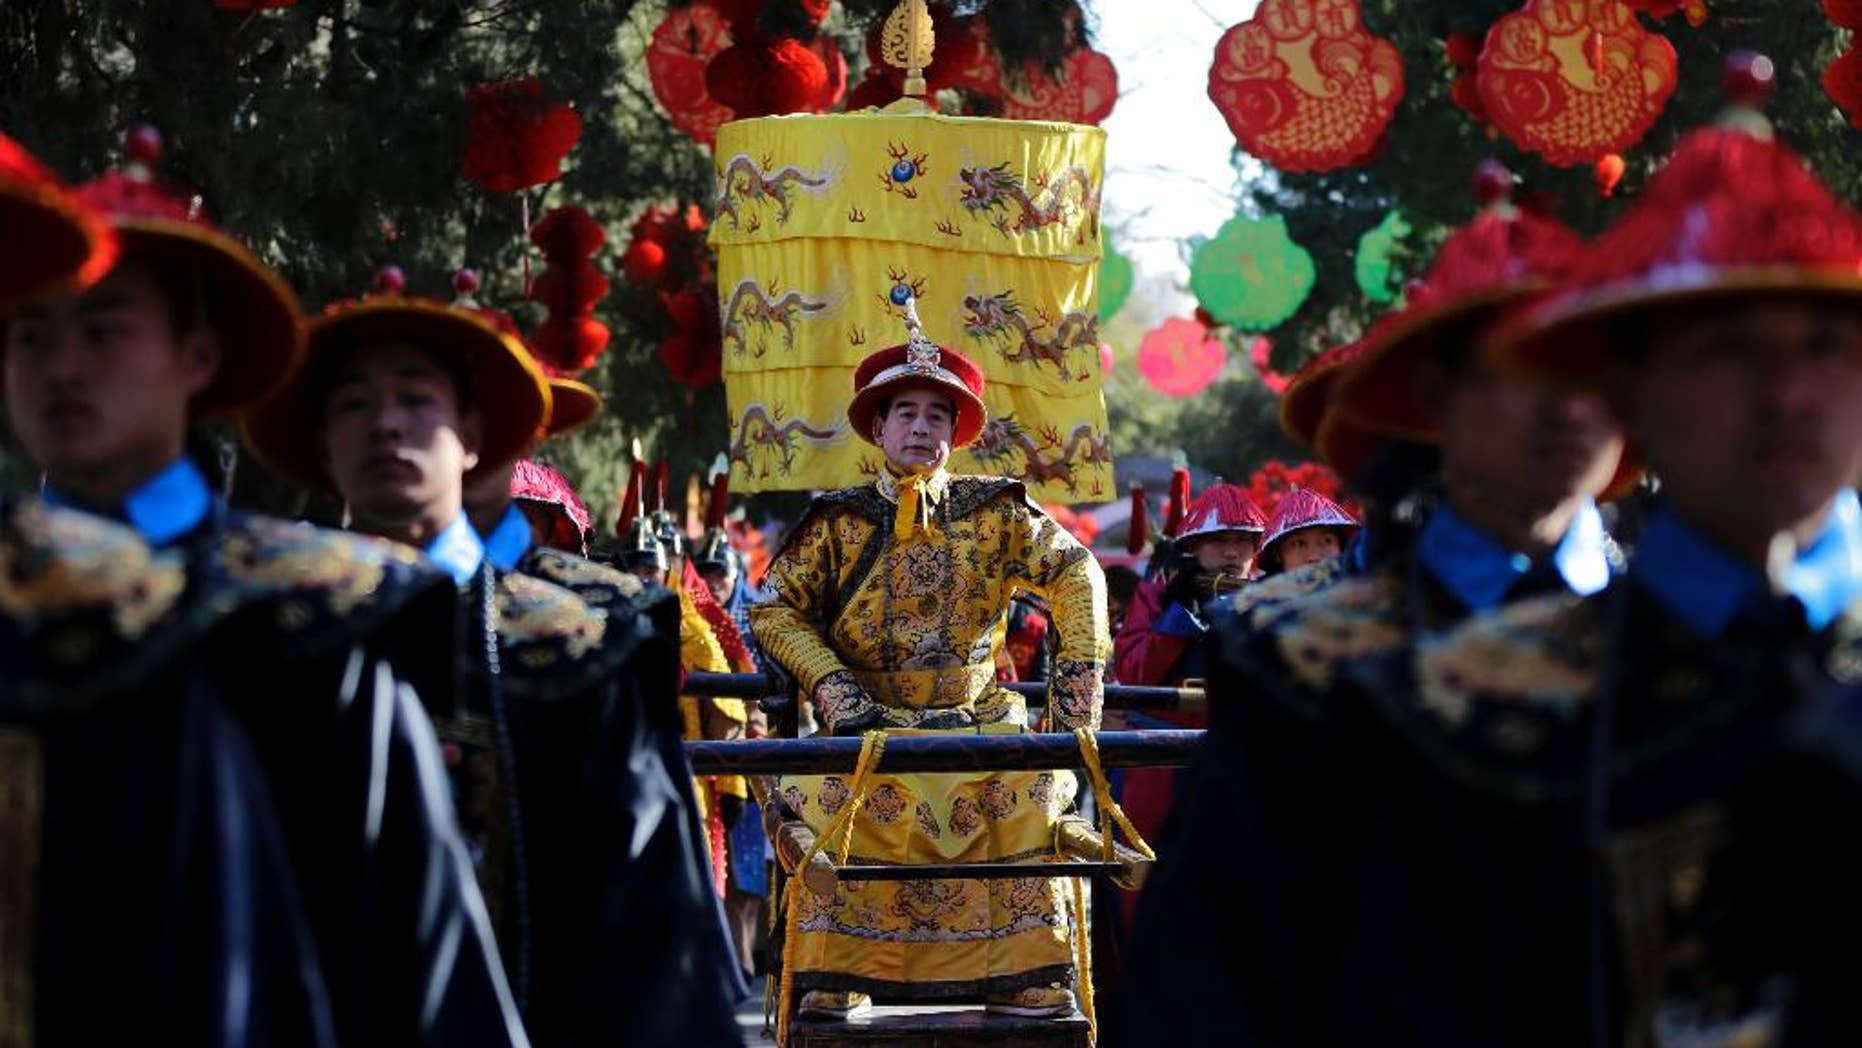 """In this photo taken Wednesday, Feb. 18, 2015, Qi Xue'en, a performer dressed as a Qing Dynasty emperor, seated at center, is carried during a re-enactment of an ancient sacrificial ceremony at Beijing's Ditan Park, the """"Altar of the Earth,"""" on the eve of the Lunar New Year. Ditan Park is one of four altars dedicated to worship of the natural elements under the principles of Chinese cosmology and geomancy, popularly known as feng shui. During the seven-day Lunar New Year holiday, the parks throng with visitors shopping for festive goods, joining in carnival games and taking a break from hectic modern life. """"I have been playing the part of emperor since 1990. I have two apprentices and several pupils now,"""" Qi, 58, said. """"Today and tomorrow, I will play the part of emperor, so I can send New Year's greetings to people I know. Let the pupils play on the second and third days of the Lunar New Year. I am getting old."""" (AP Photo/Andy Wong)"""